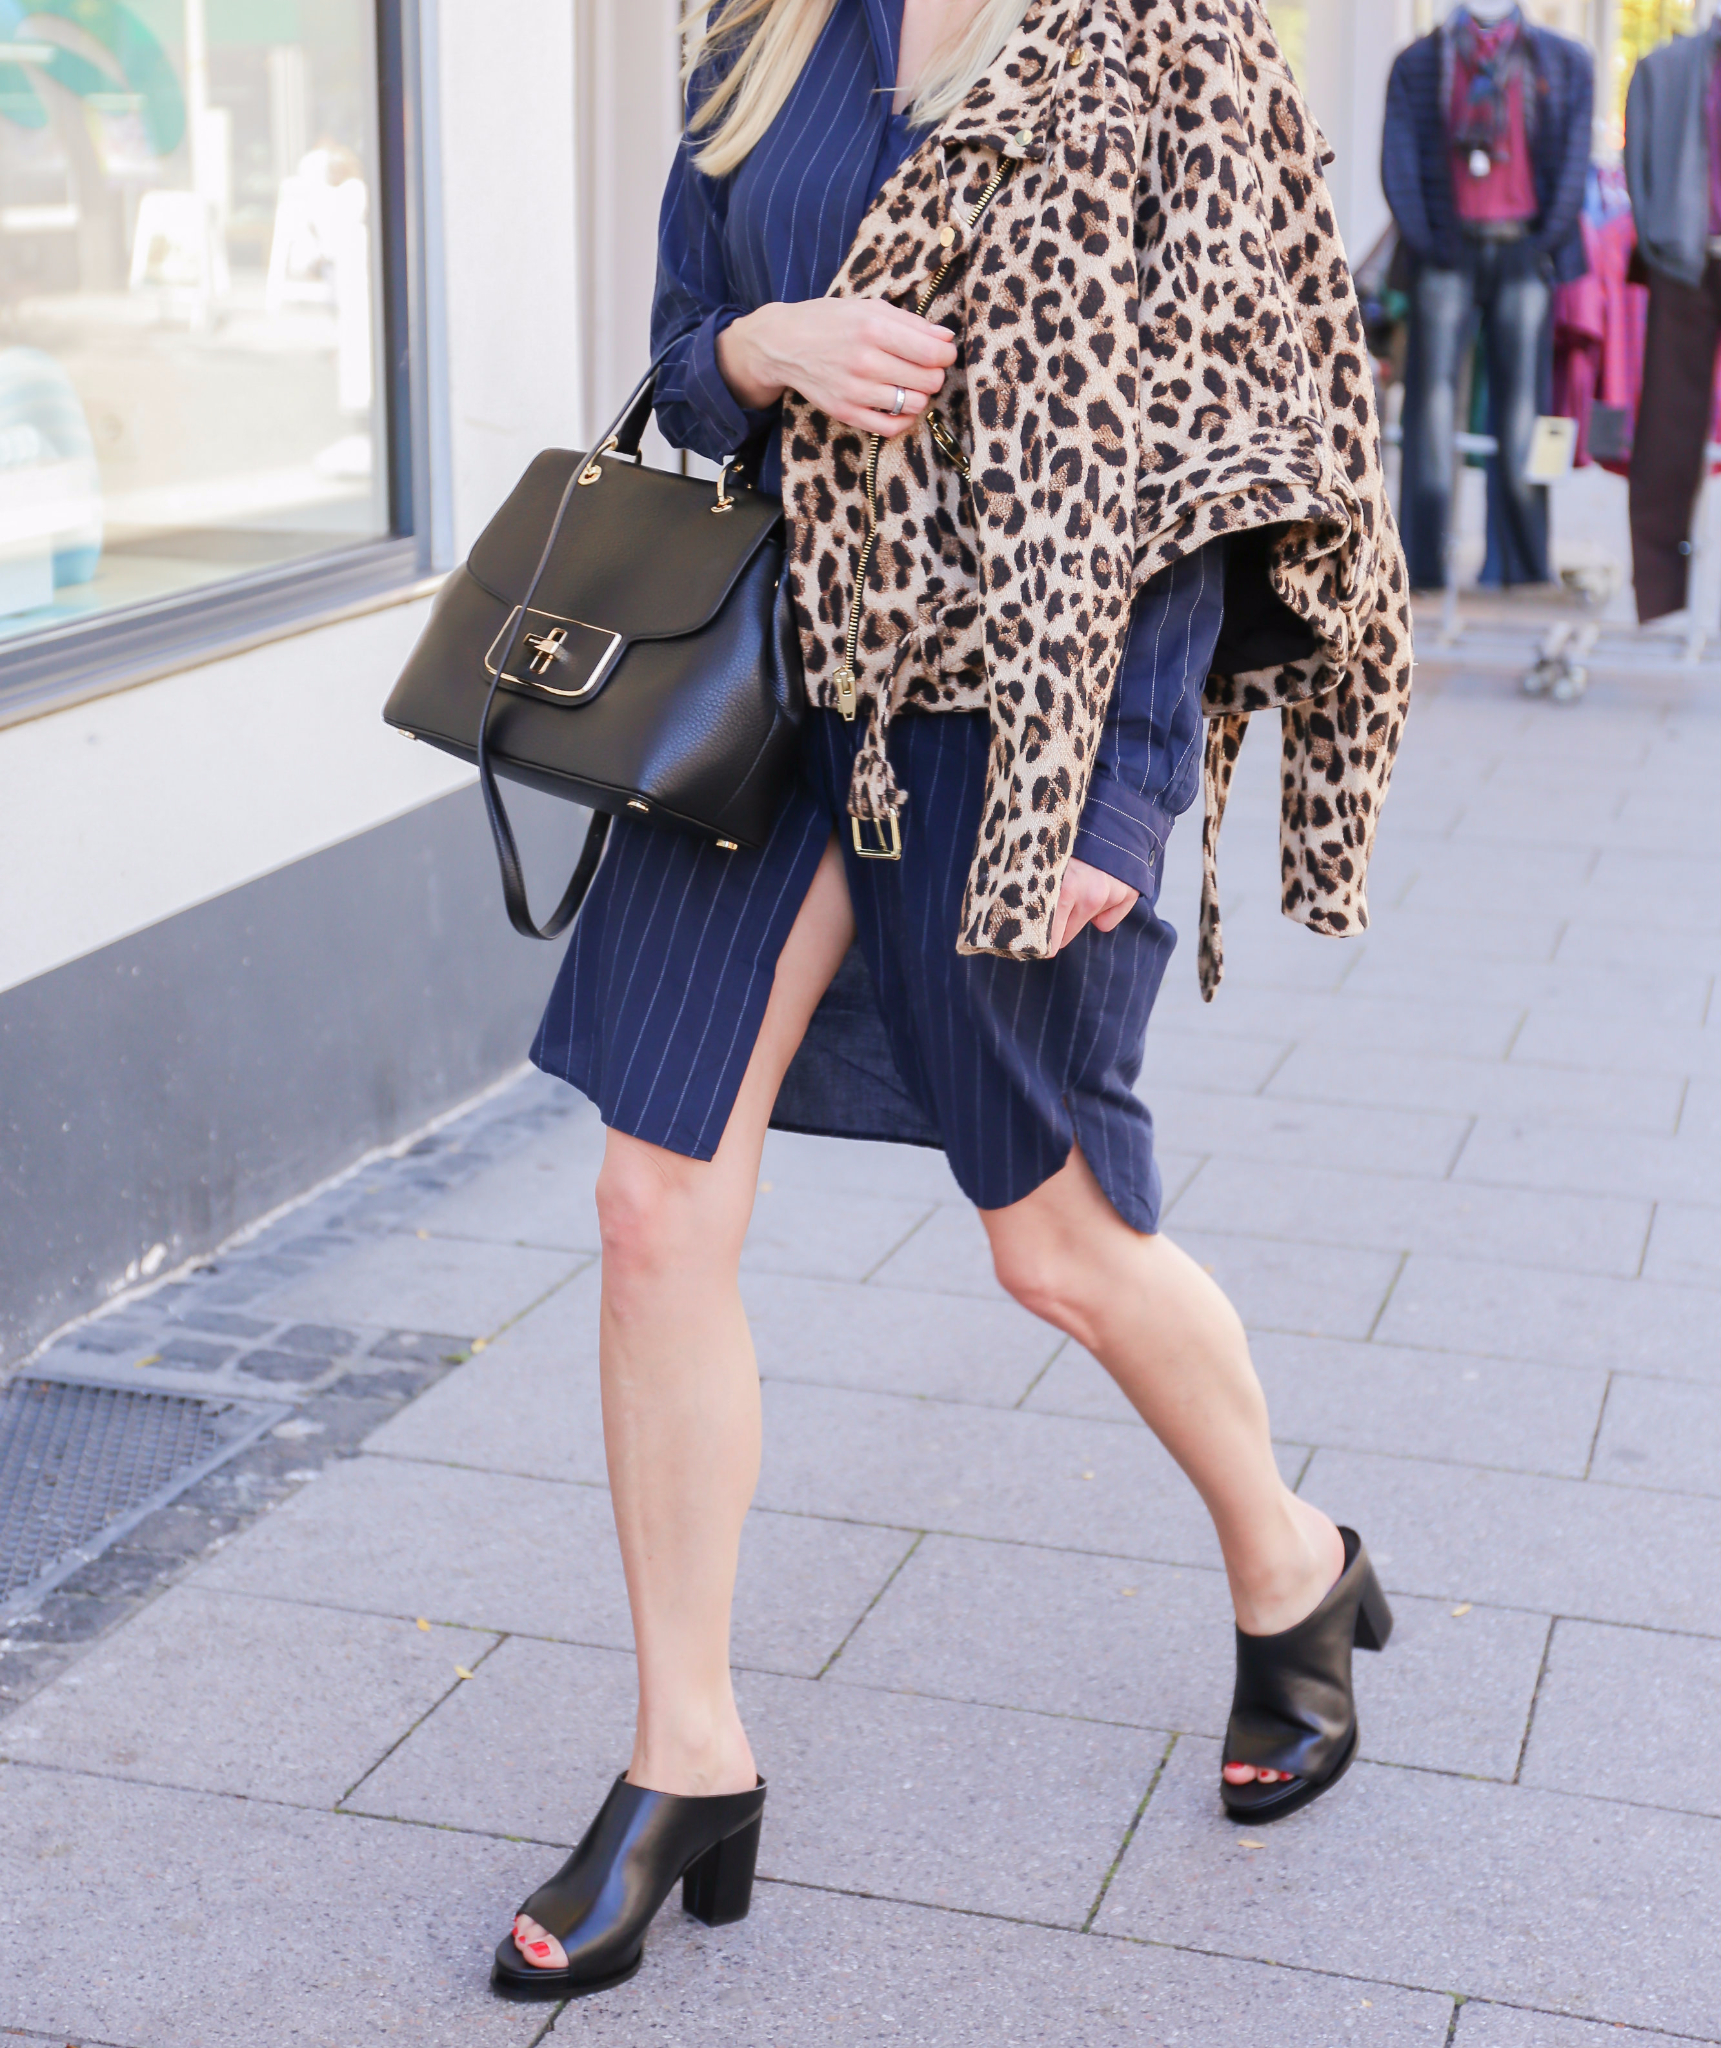 MOD-by-Monique-Fashion-Looks-Leopard-Print-Pintripes-Mules-14-1